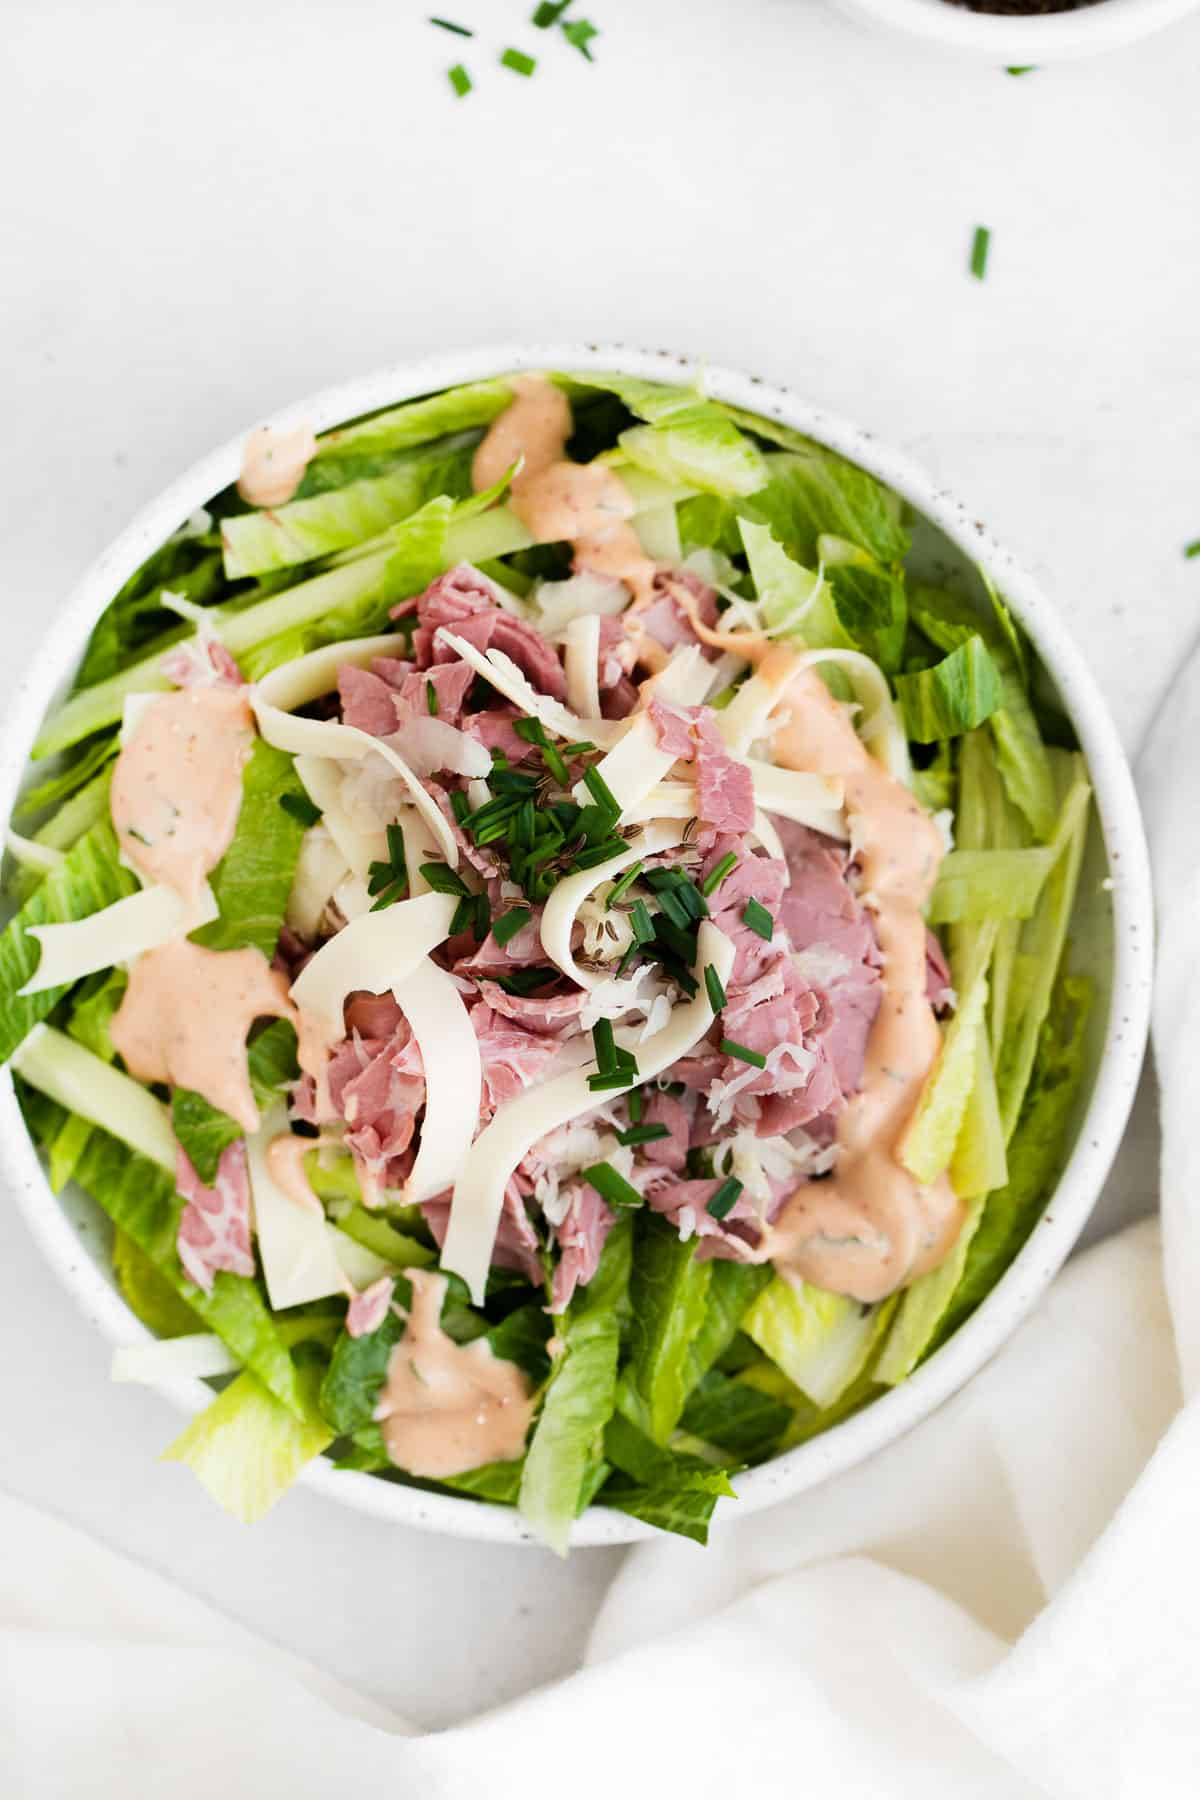 salad in a white ceramic bowl with romaine, corned beef, sauerkraut, Swiss cheese, and Russian dressing